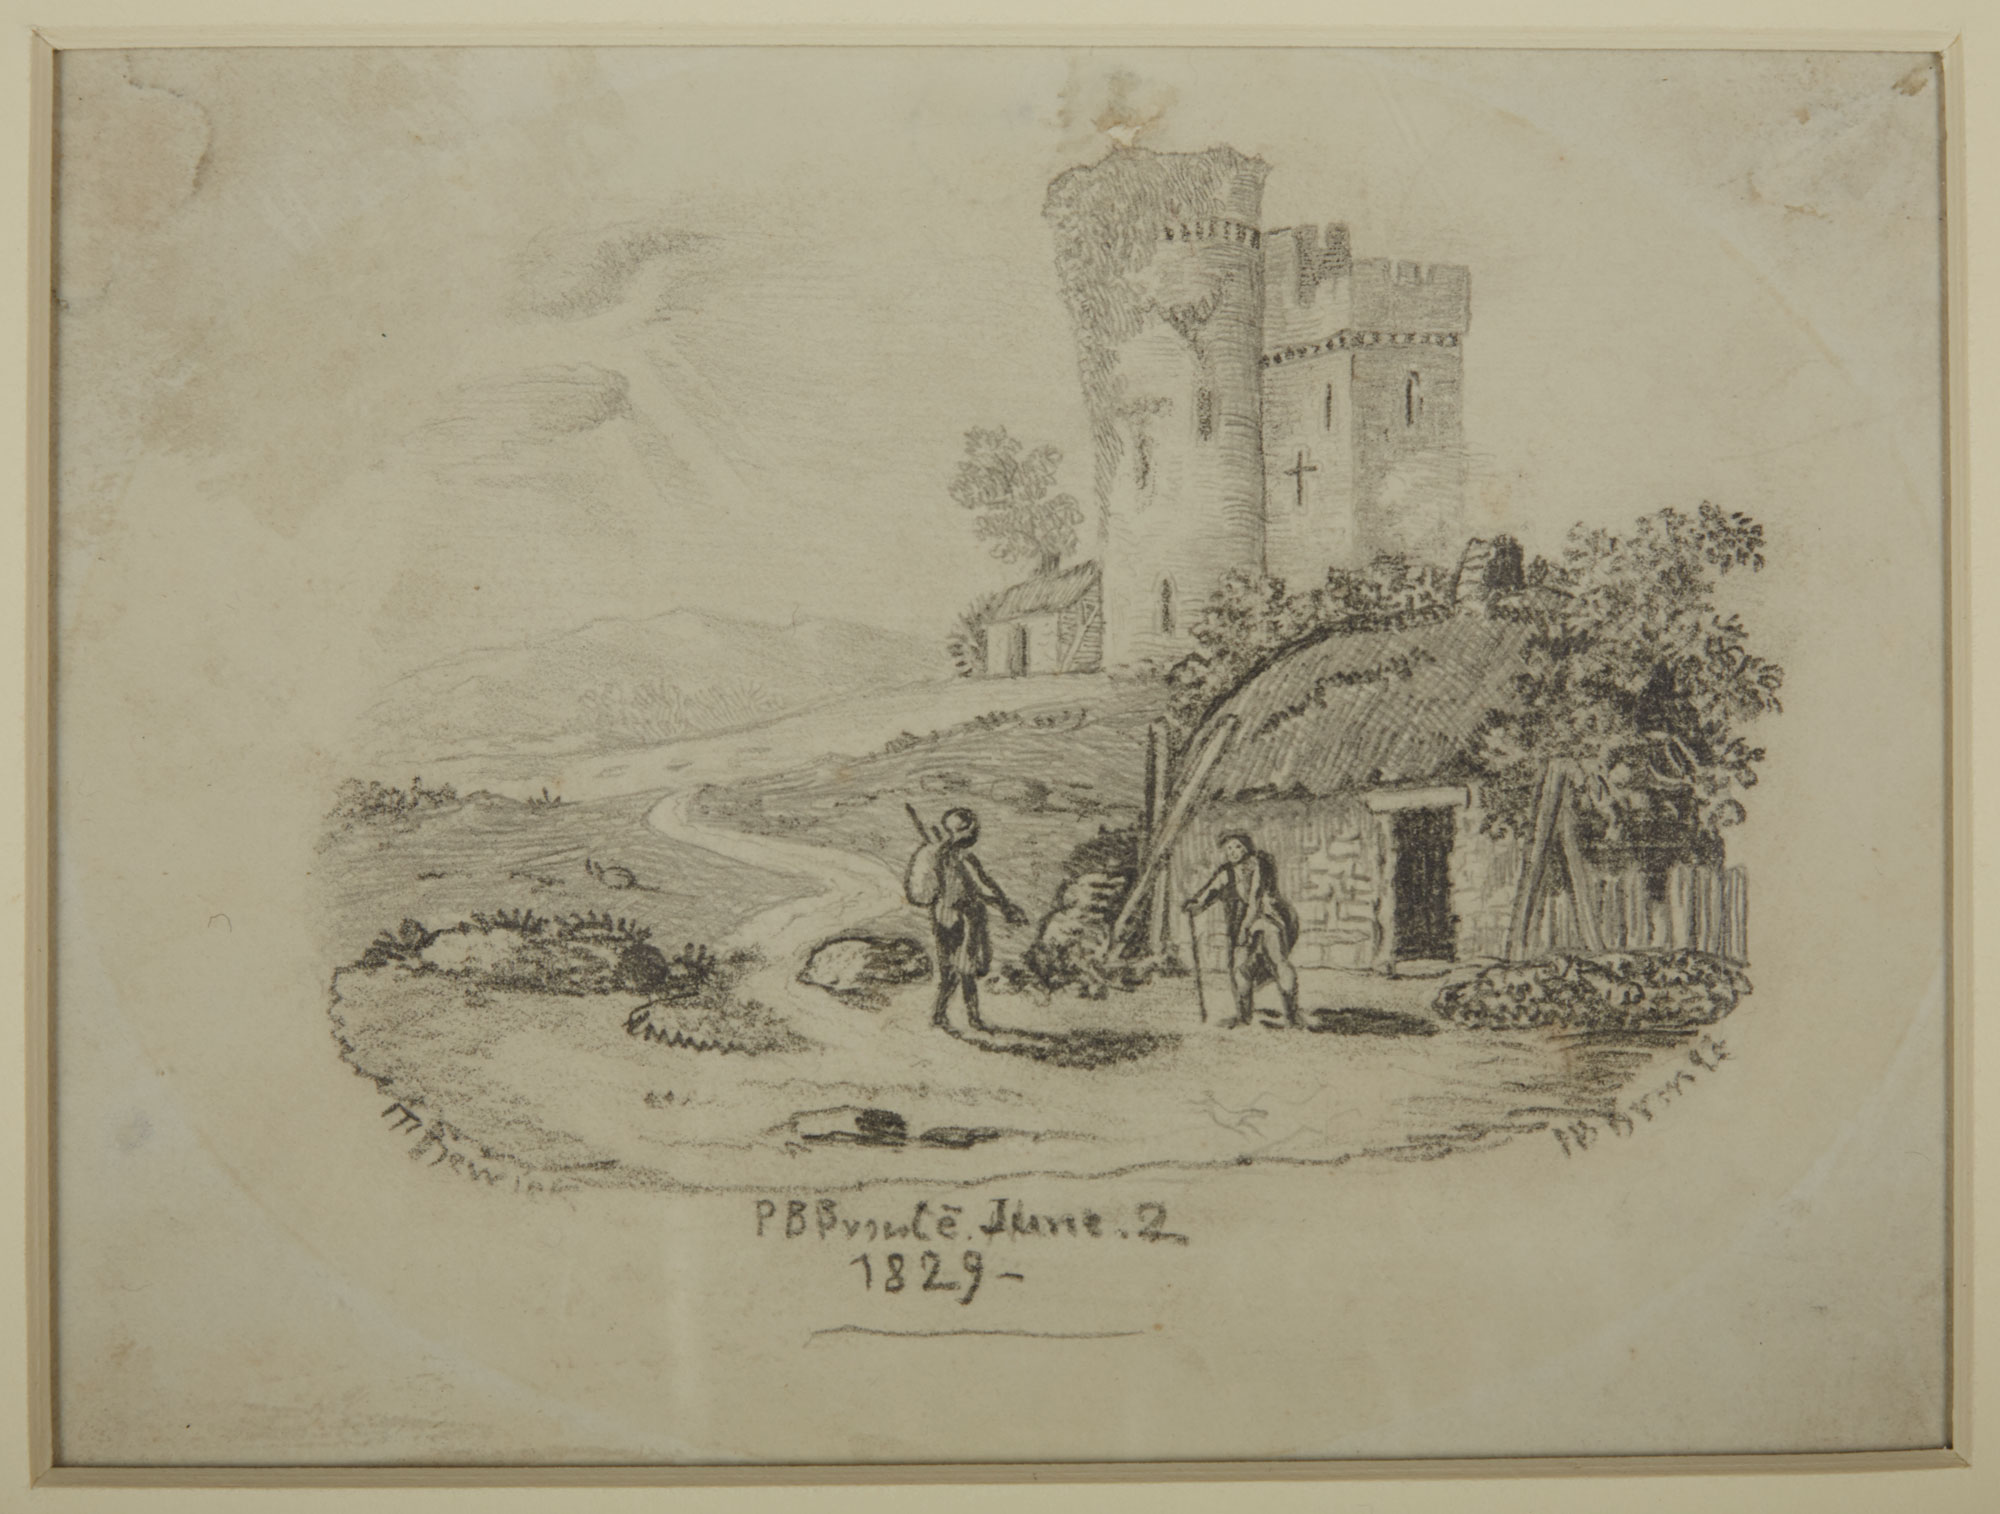 Rural scene by Branwell Bronte [folio: 0]